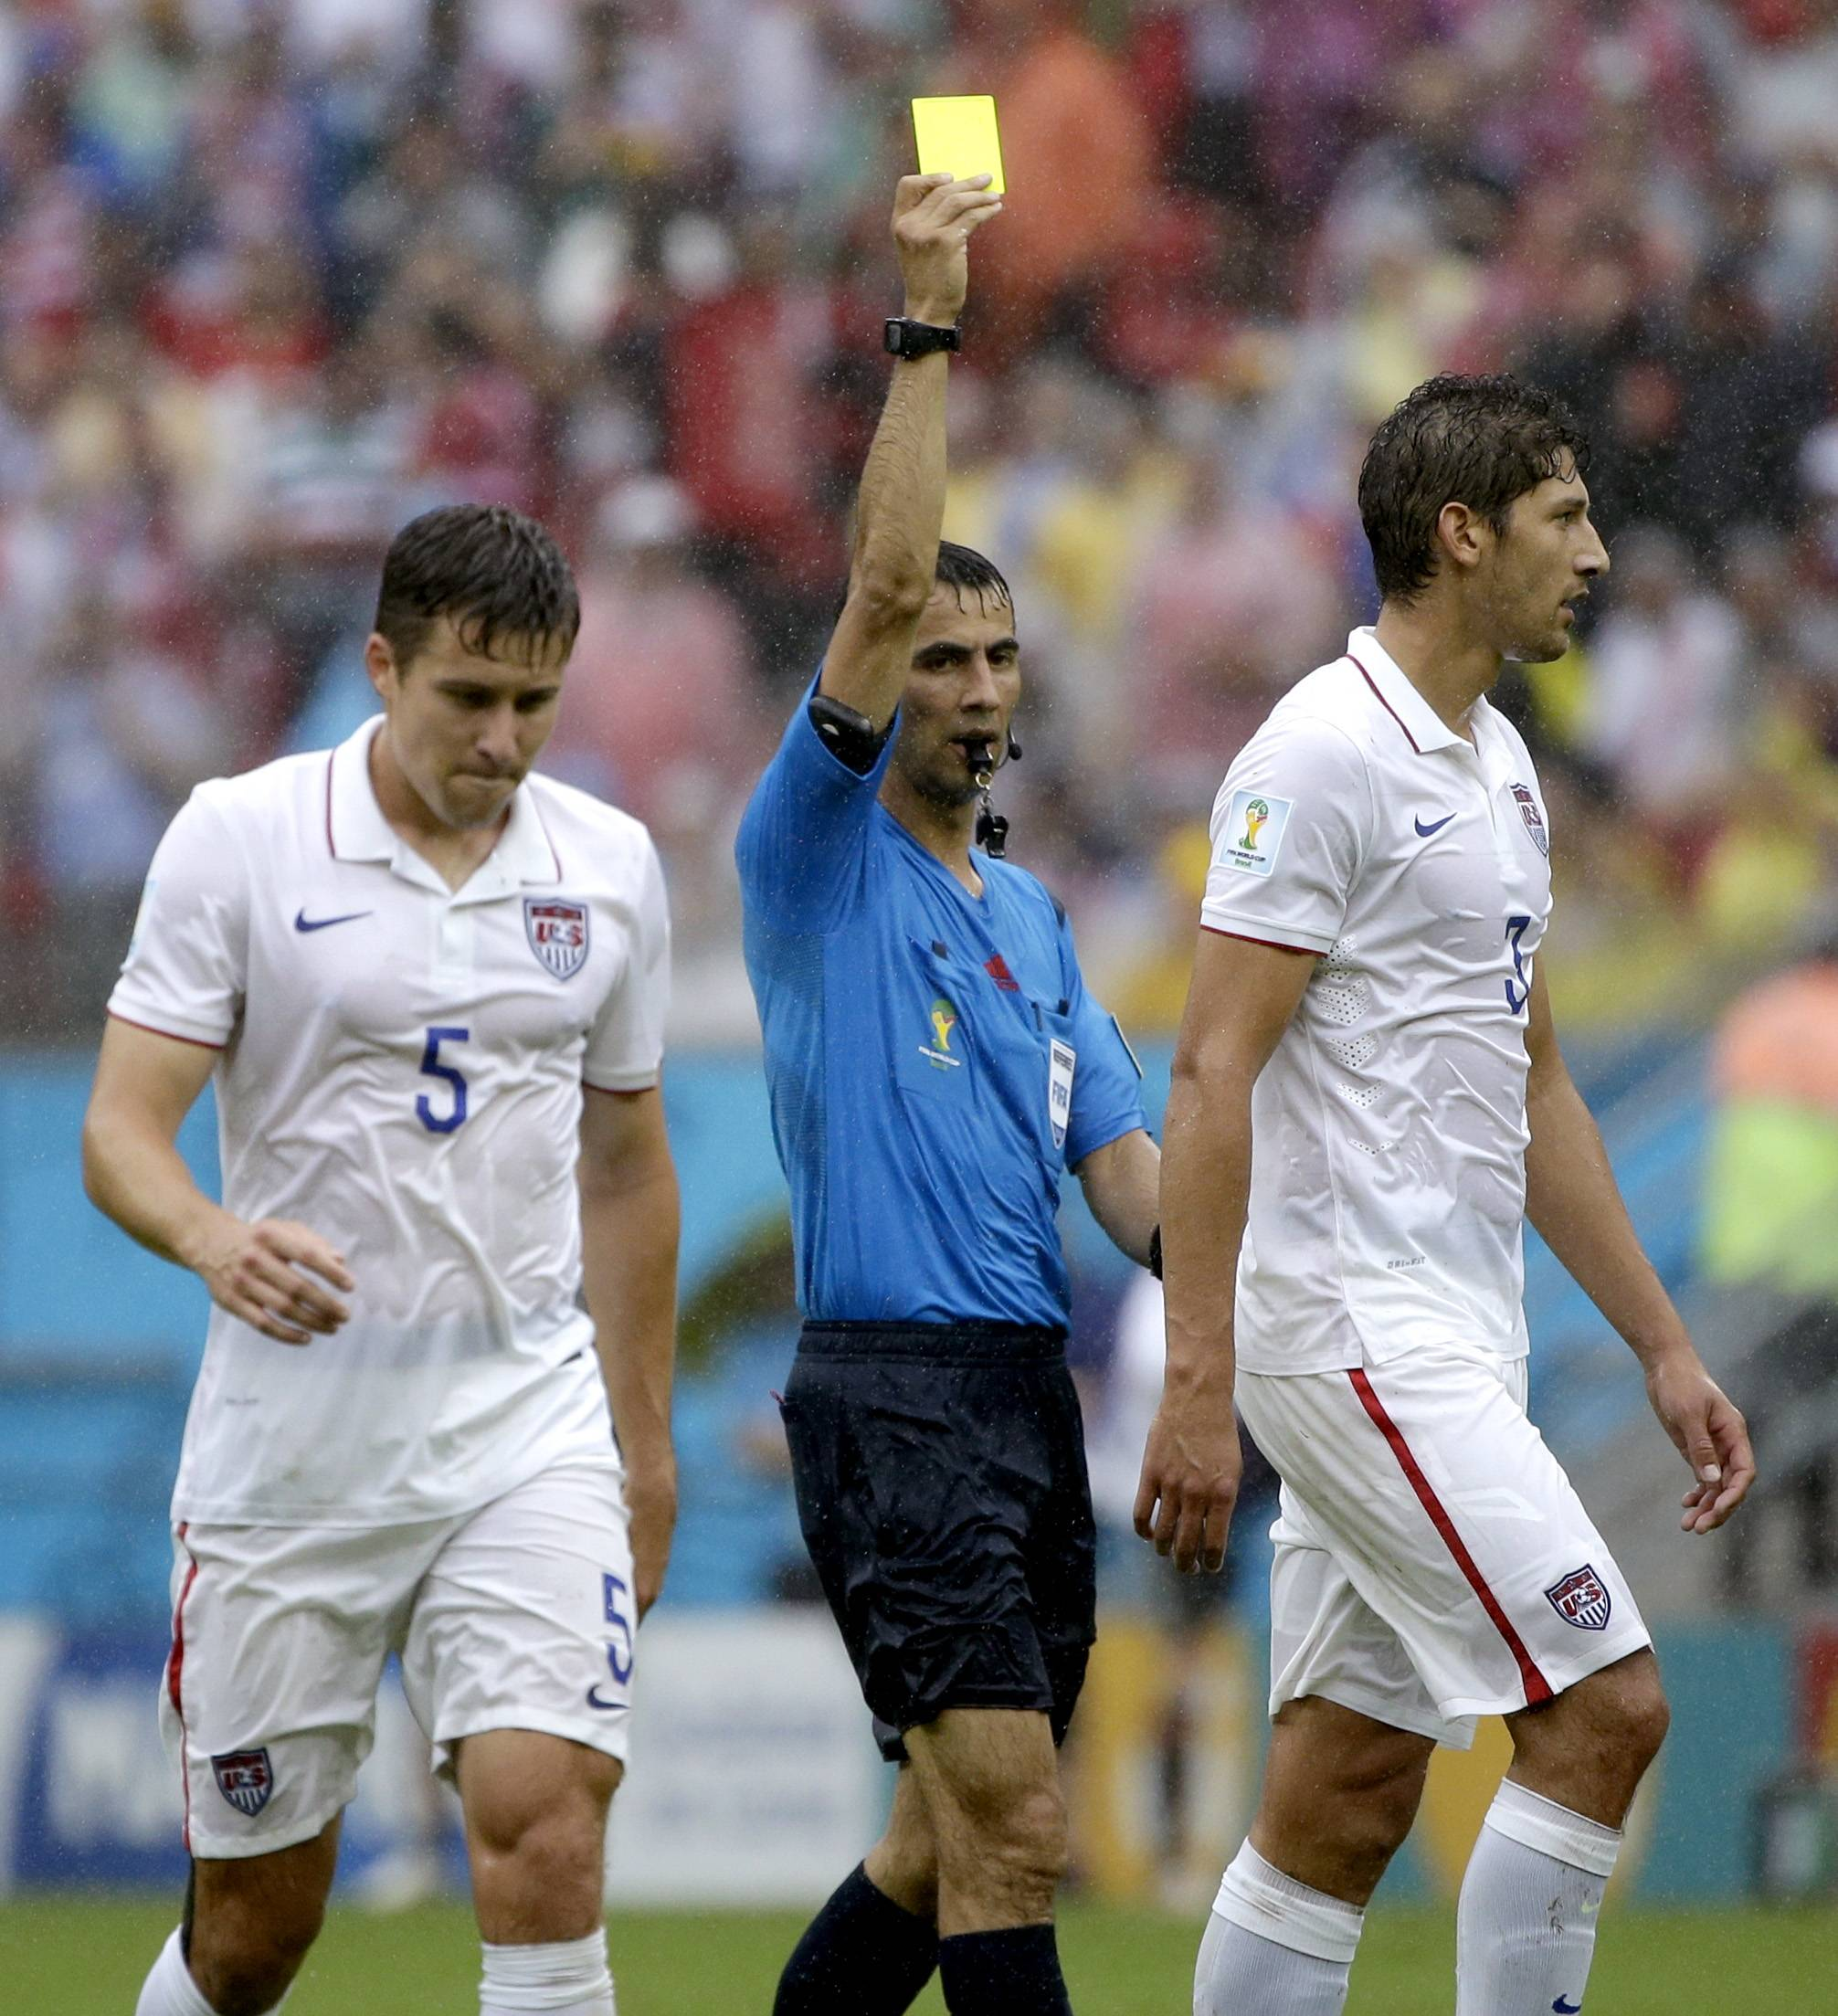 United States' Omar Gonzalez walks away with teammate Matt Besler (5) as referee Ravshan Irmatov from Uzbekistan gives Gonzalez a yellow card during the group G World Cup soccer match between the USA and Germany at the Arena Pernambuco in Recife, Brazil, Thursday, June 26, 2014.